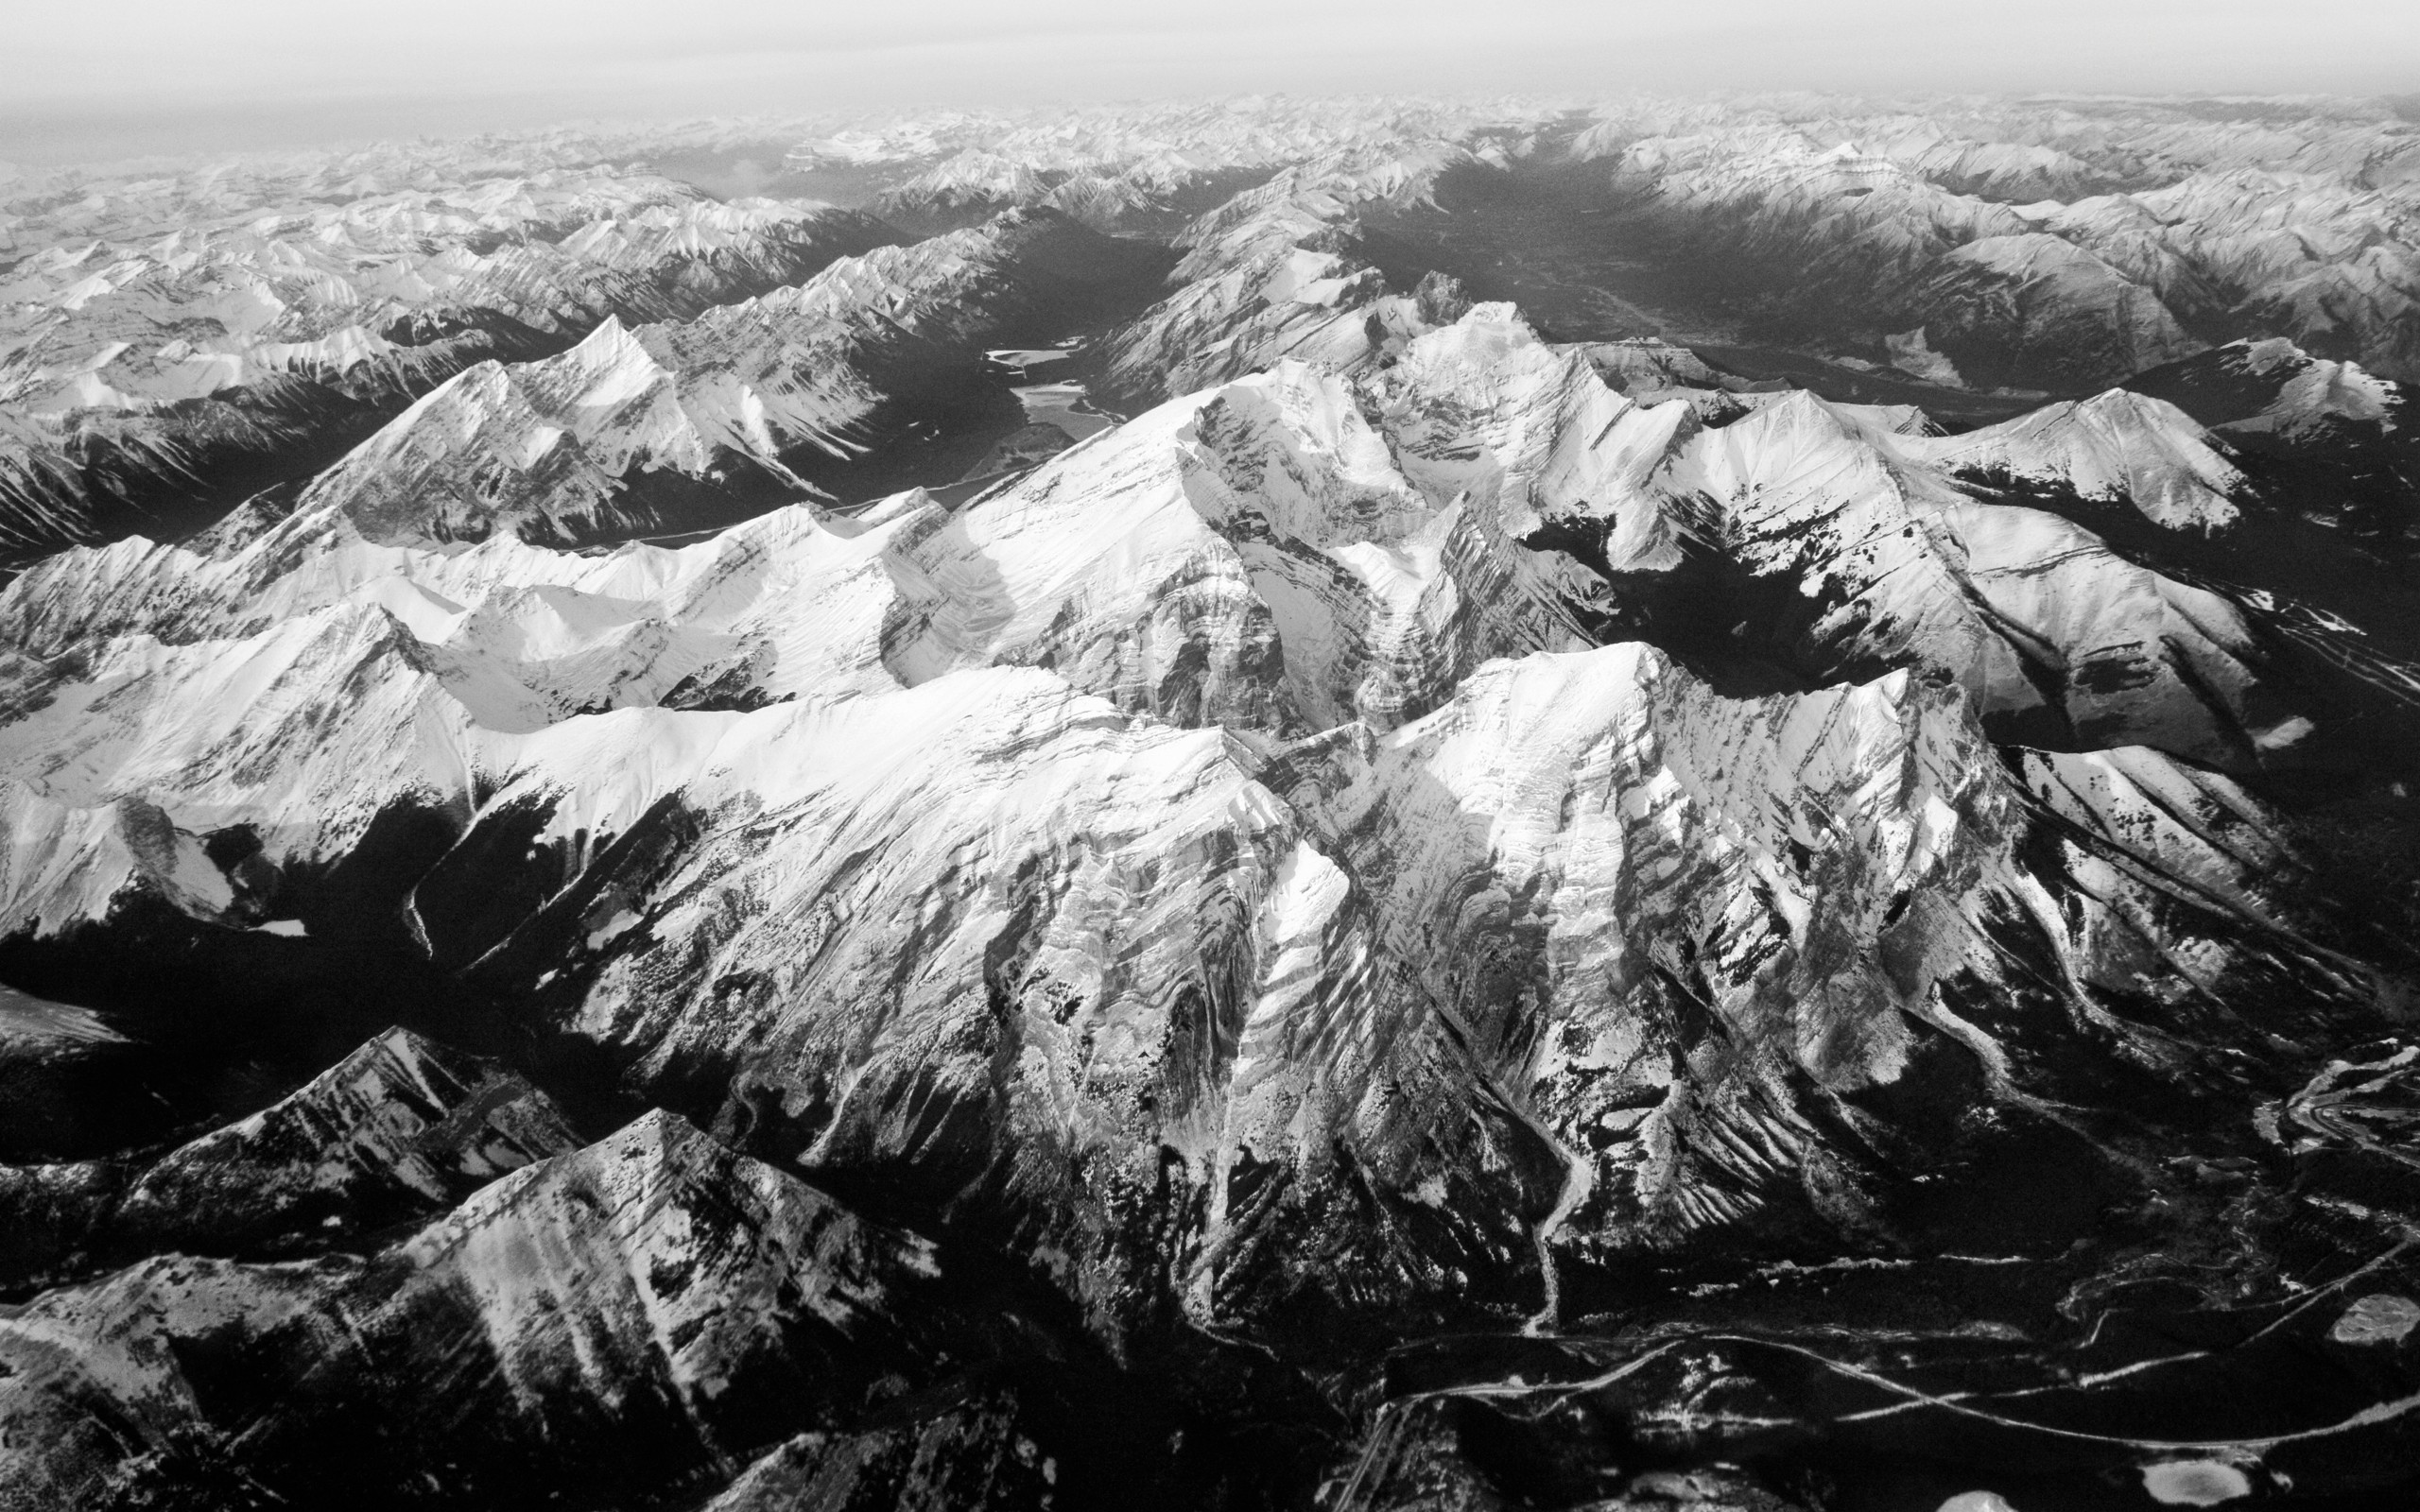 Black And White Mountains Wallpaper 2560x1600 59196 Wallpaperup